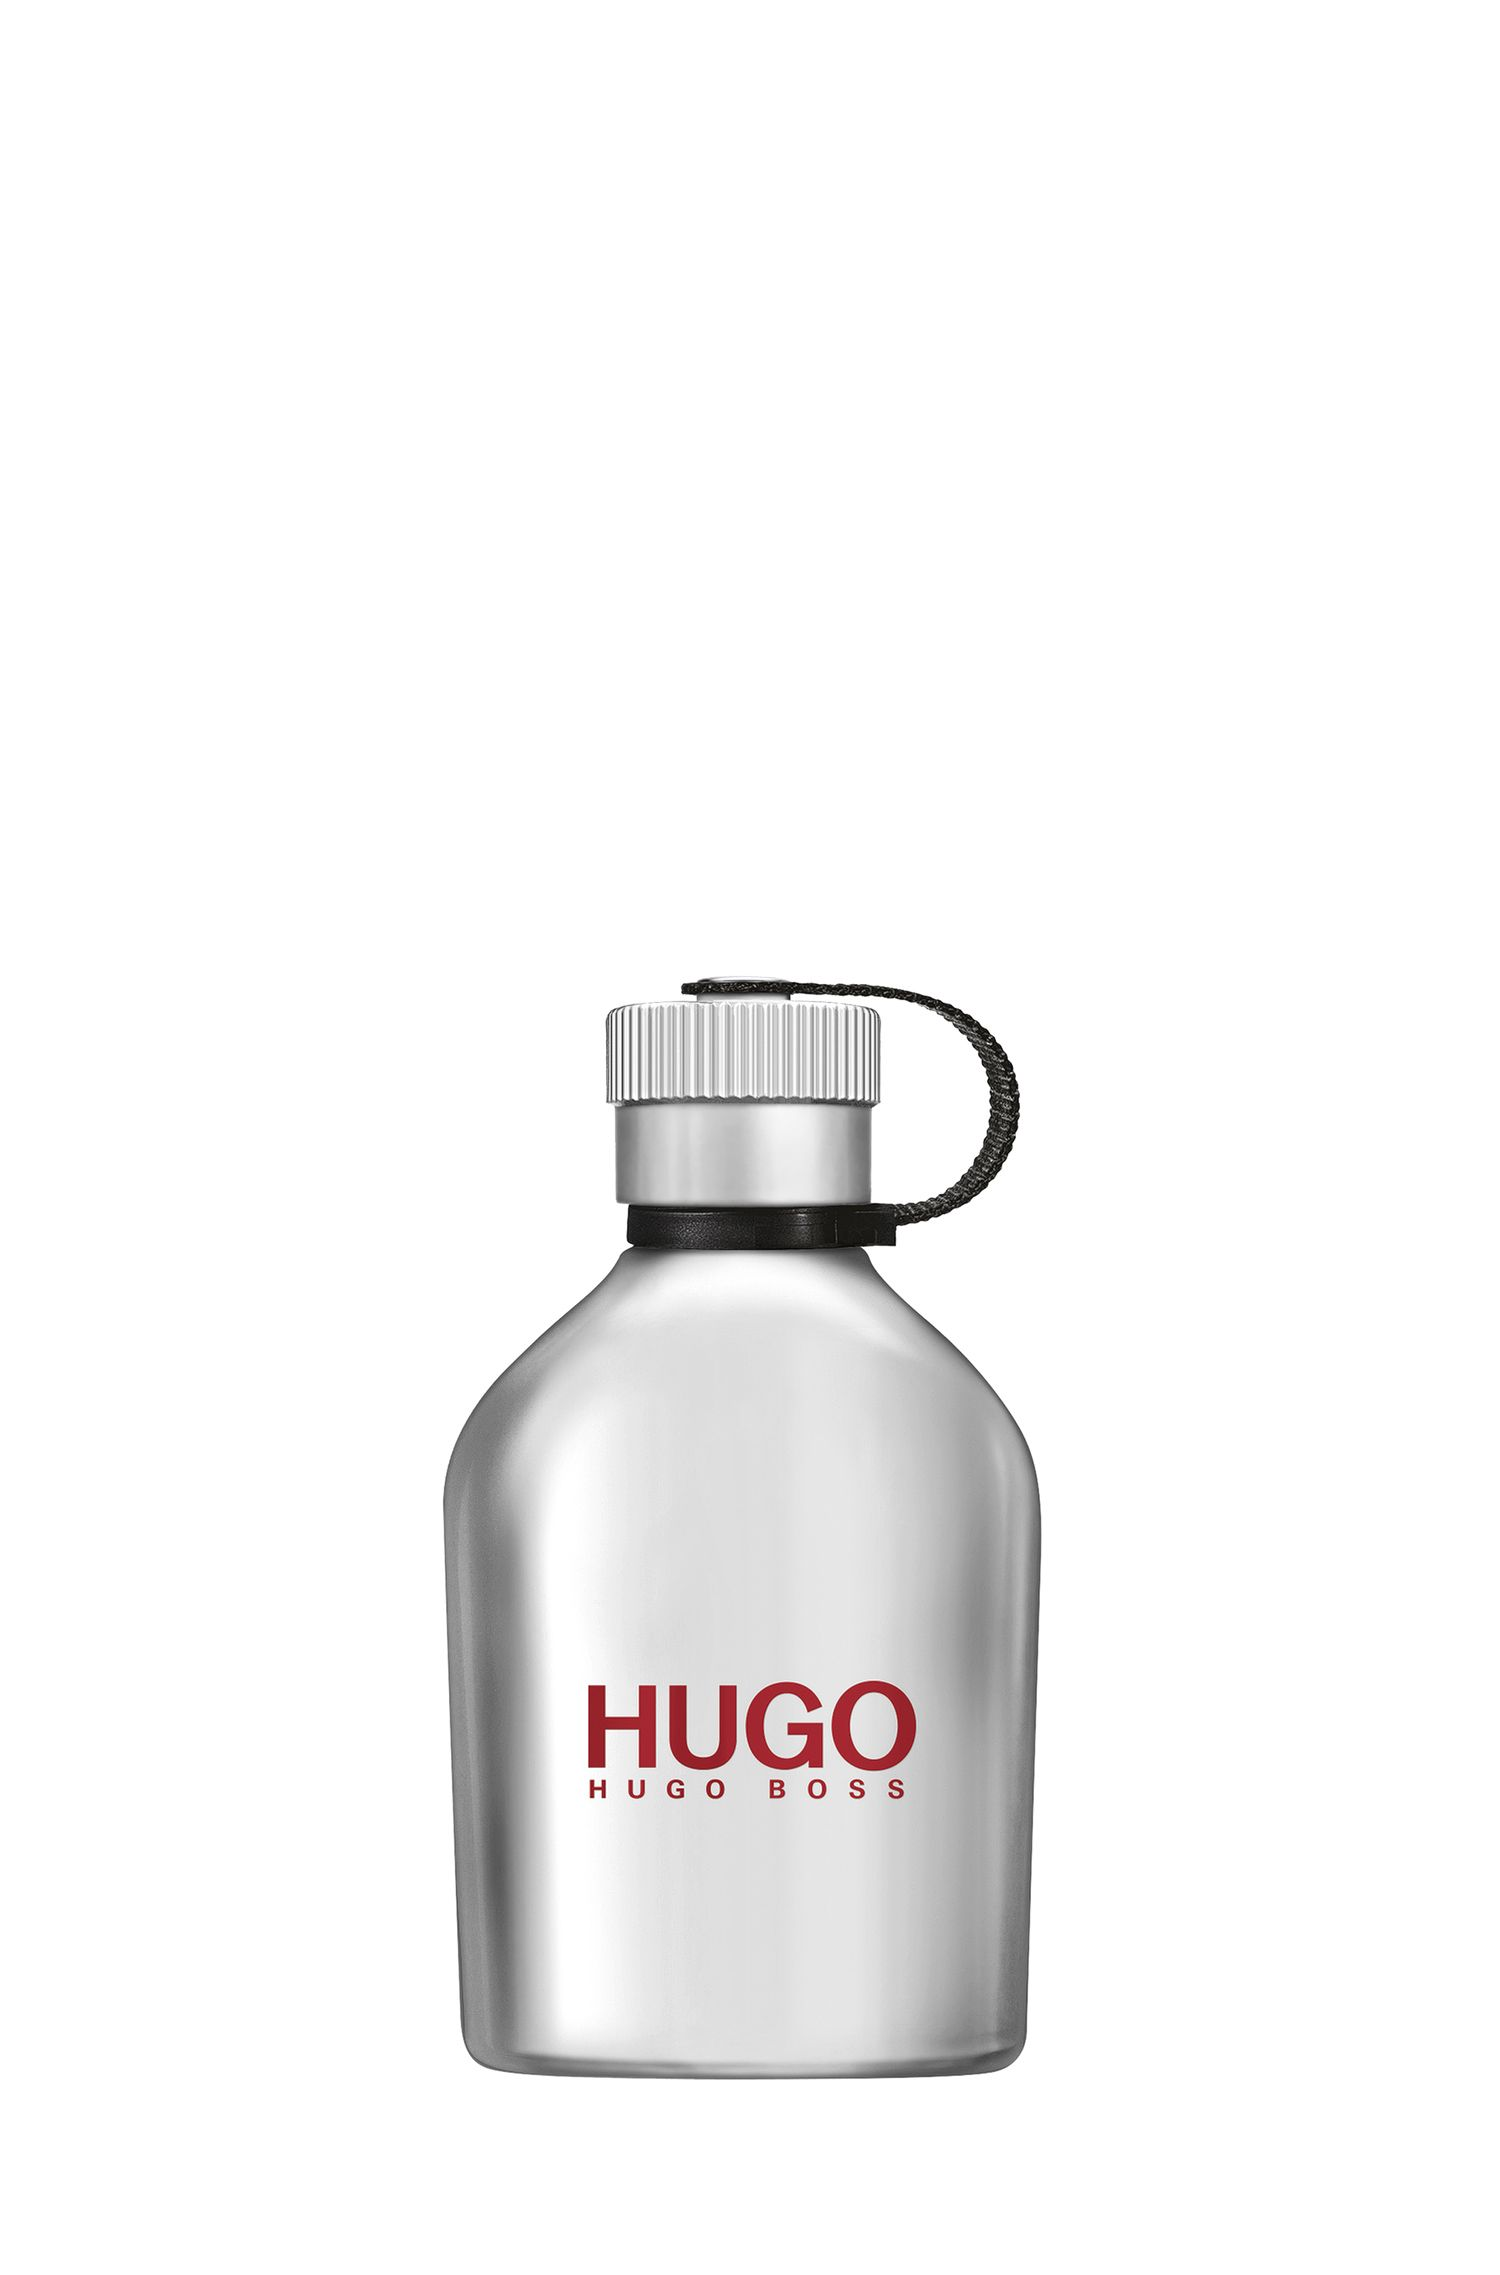 HUGO Iced eau de toilette 125ml